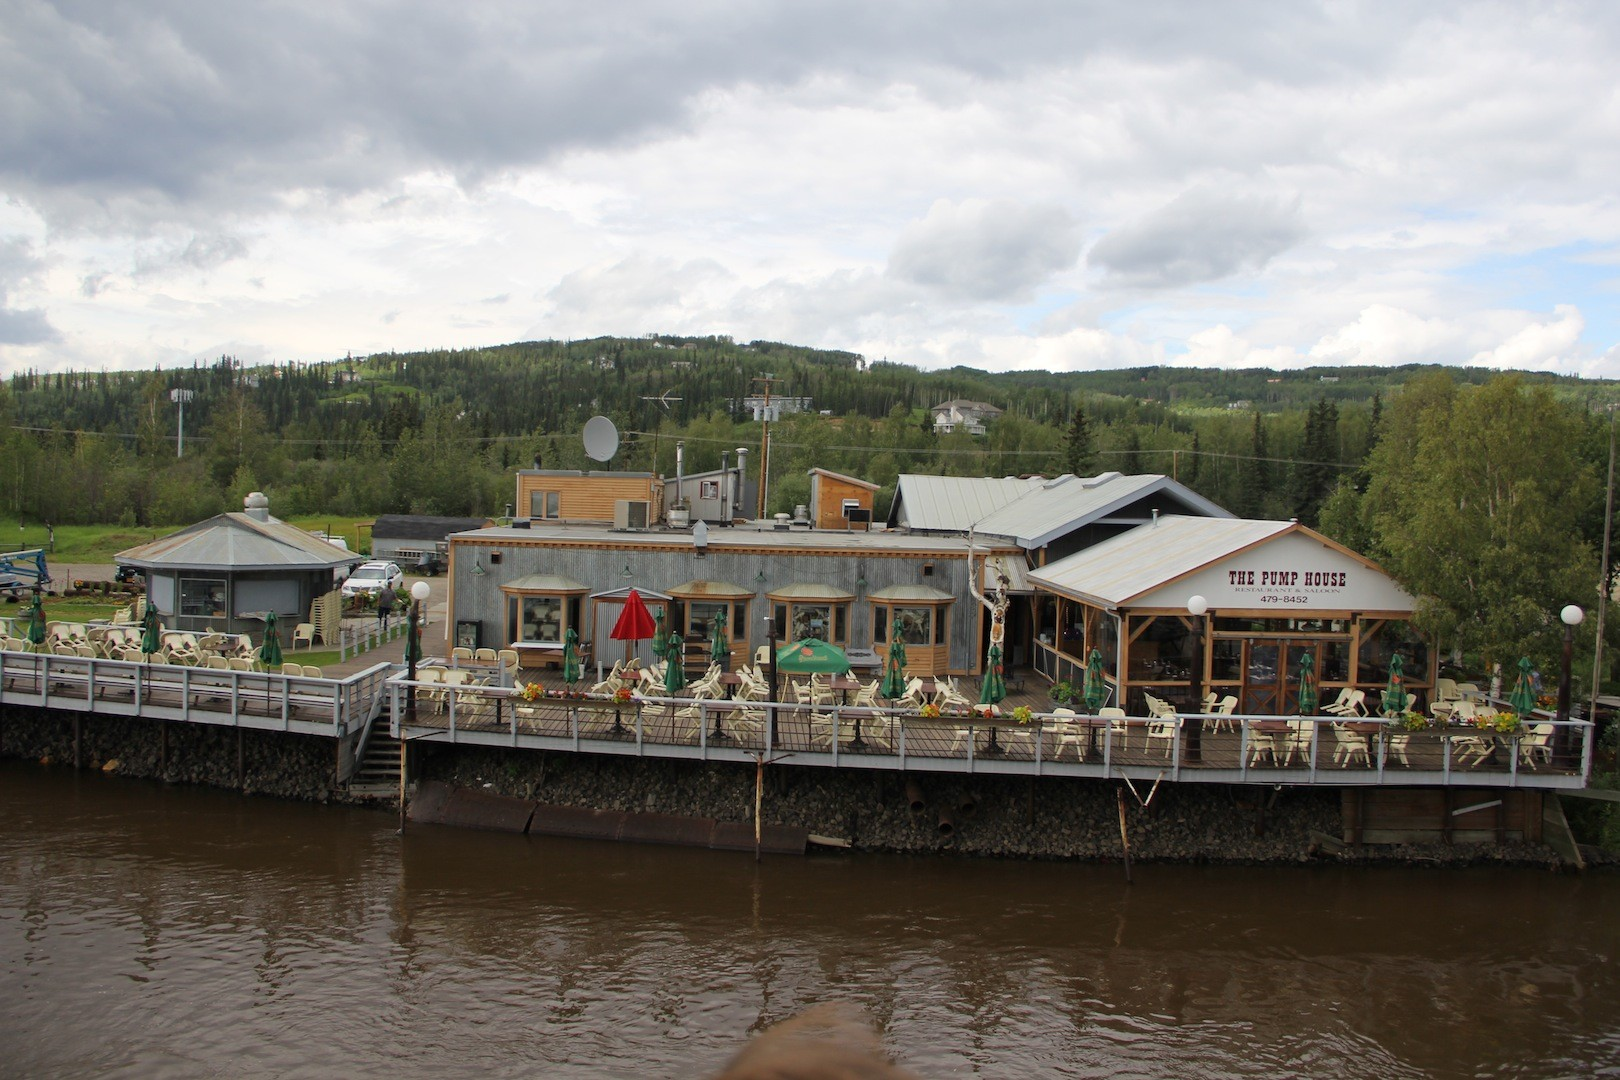 The Chena Pump House was once used to pump water up Chena Ridge to supply dredge and hydraulic mining operations along Cripple Creek. Today it is a popular bar and restaurant with National Historic designation.